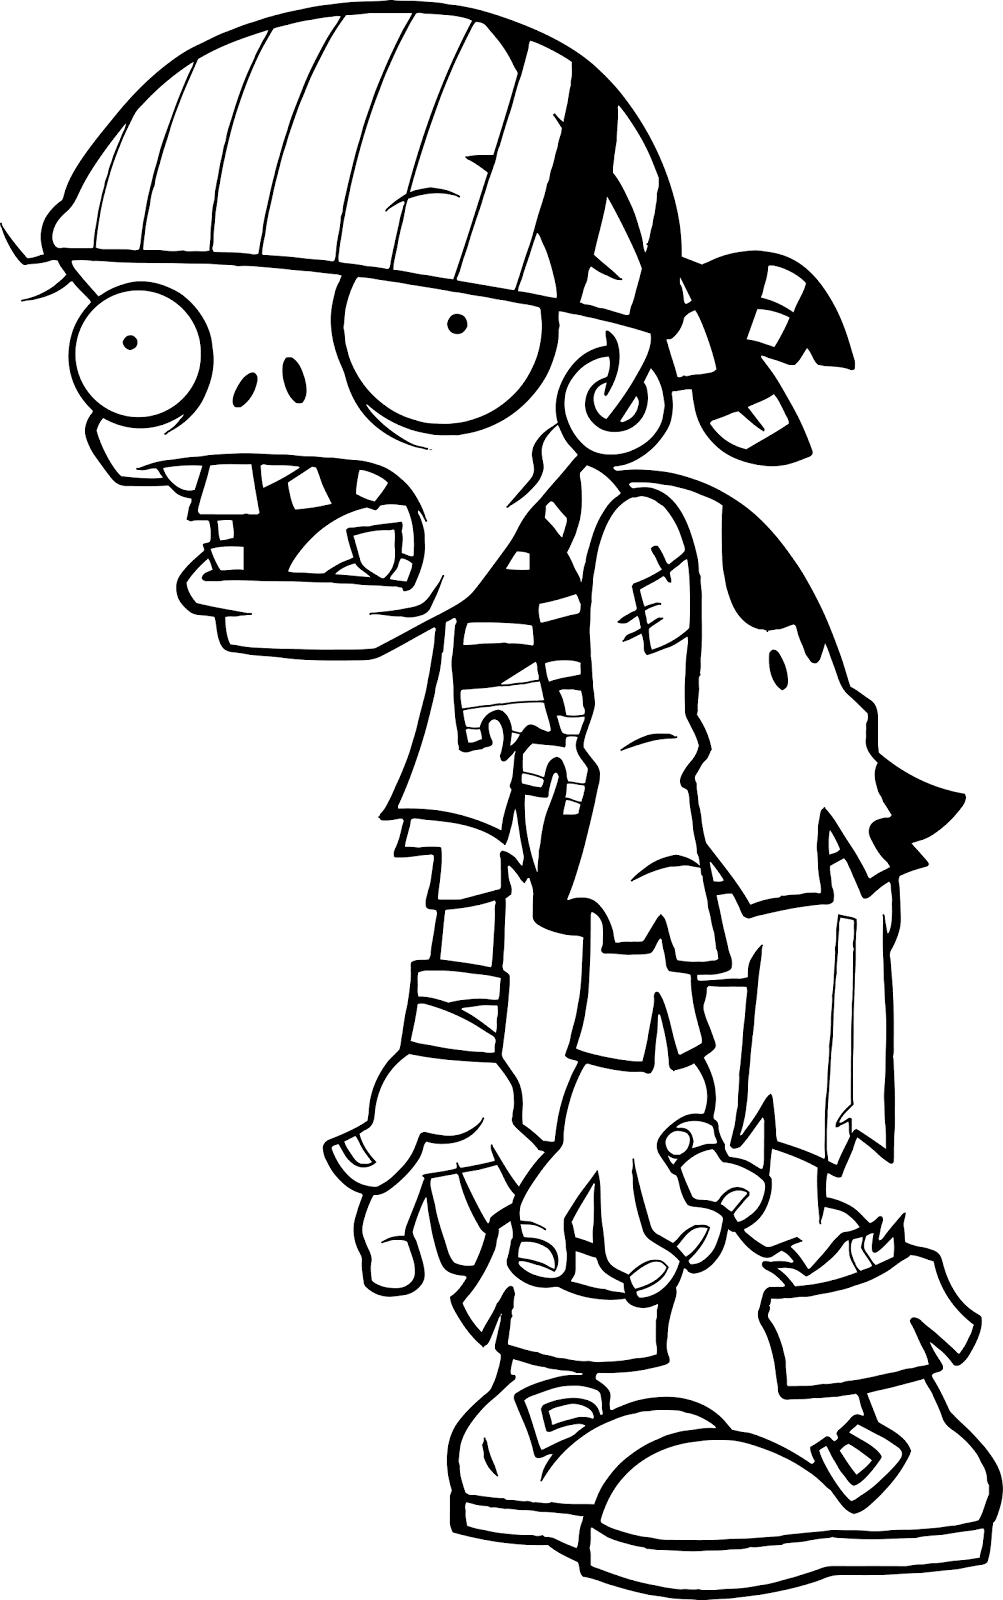 zombie coloring pages free printable zombies coloring pages for kids pages zombie coloring